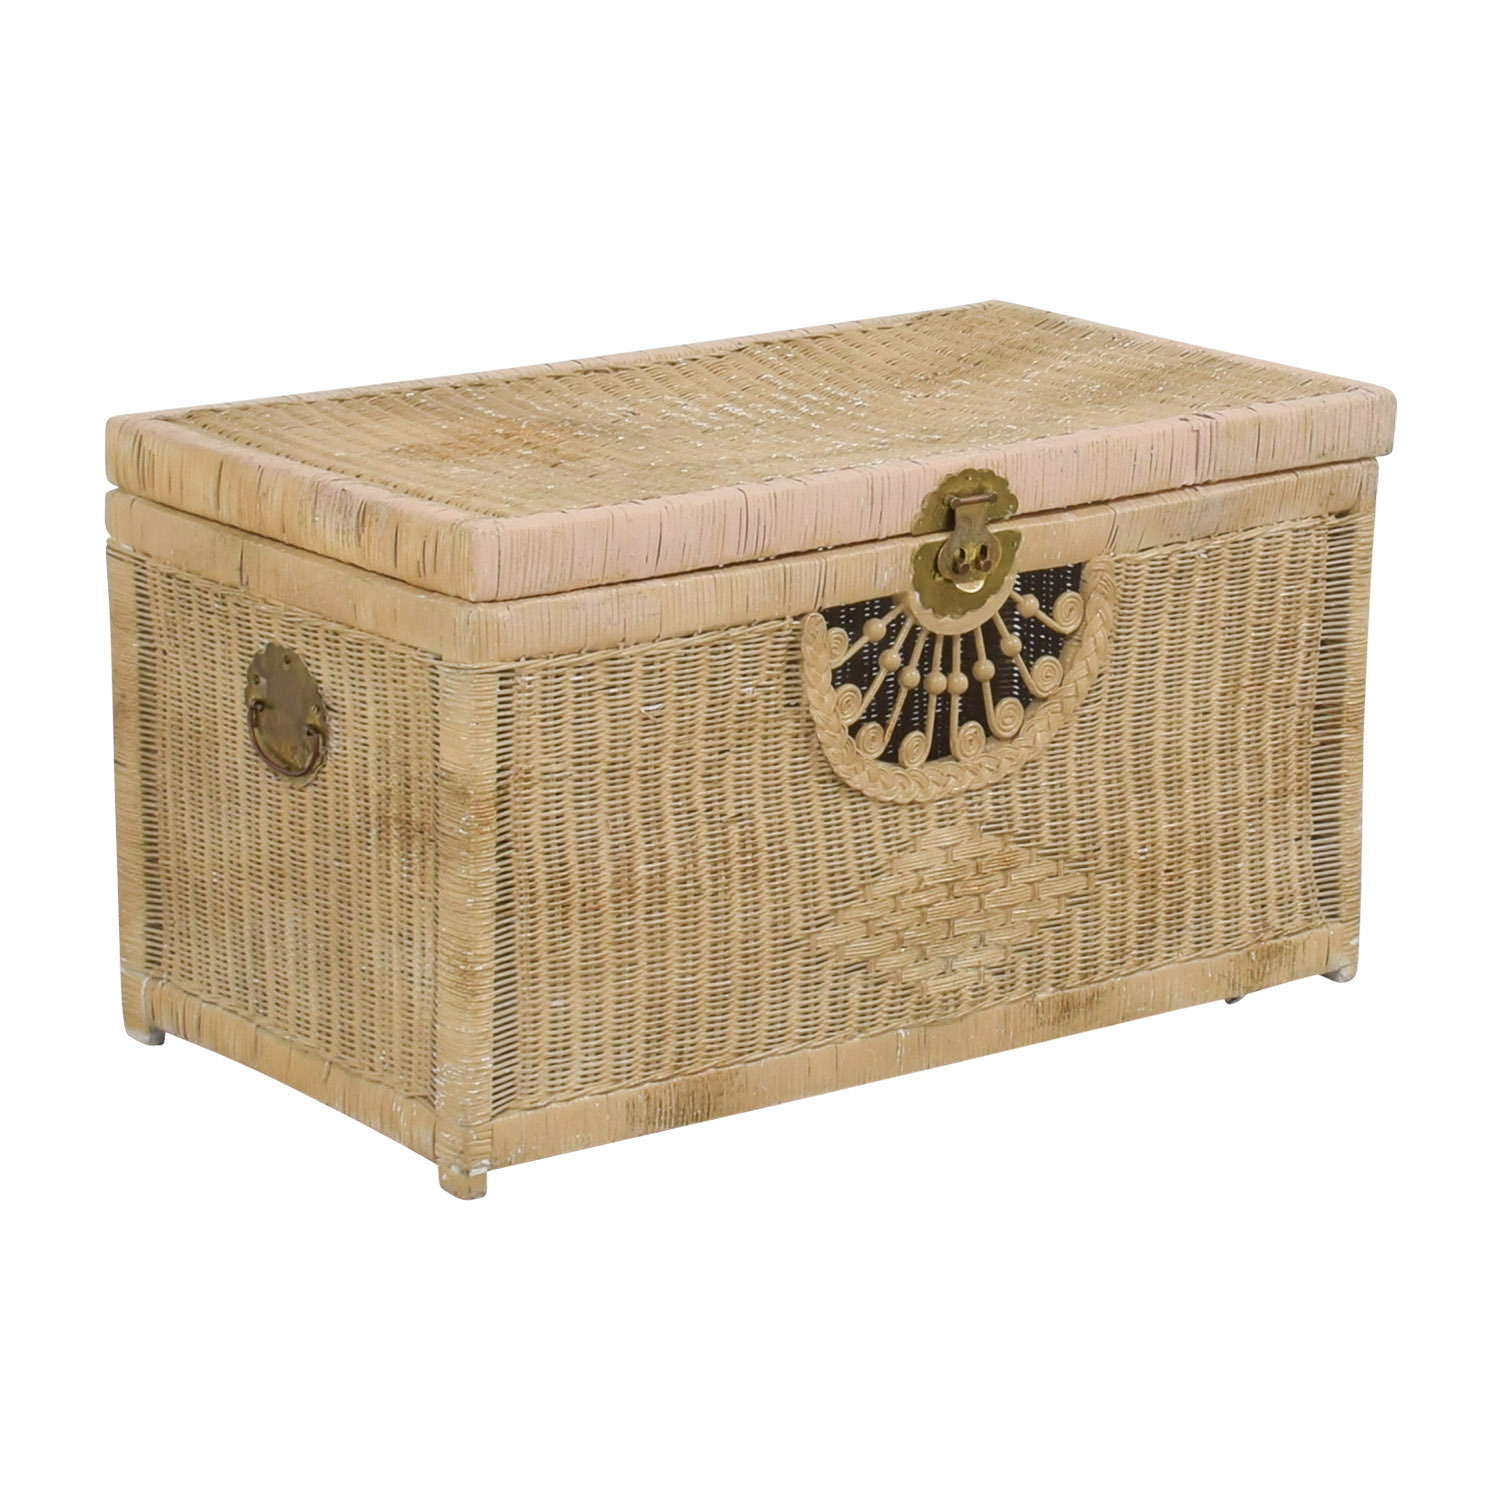 buy Pier 1 Imports Pier 1 Imports Natural Wicker Trunk online